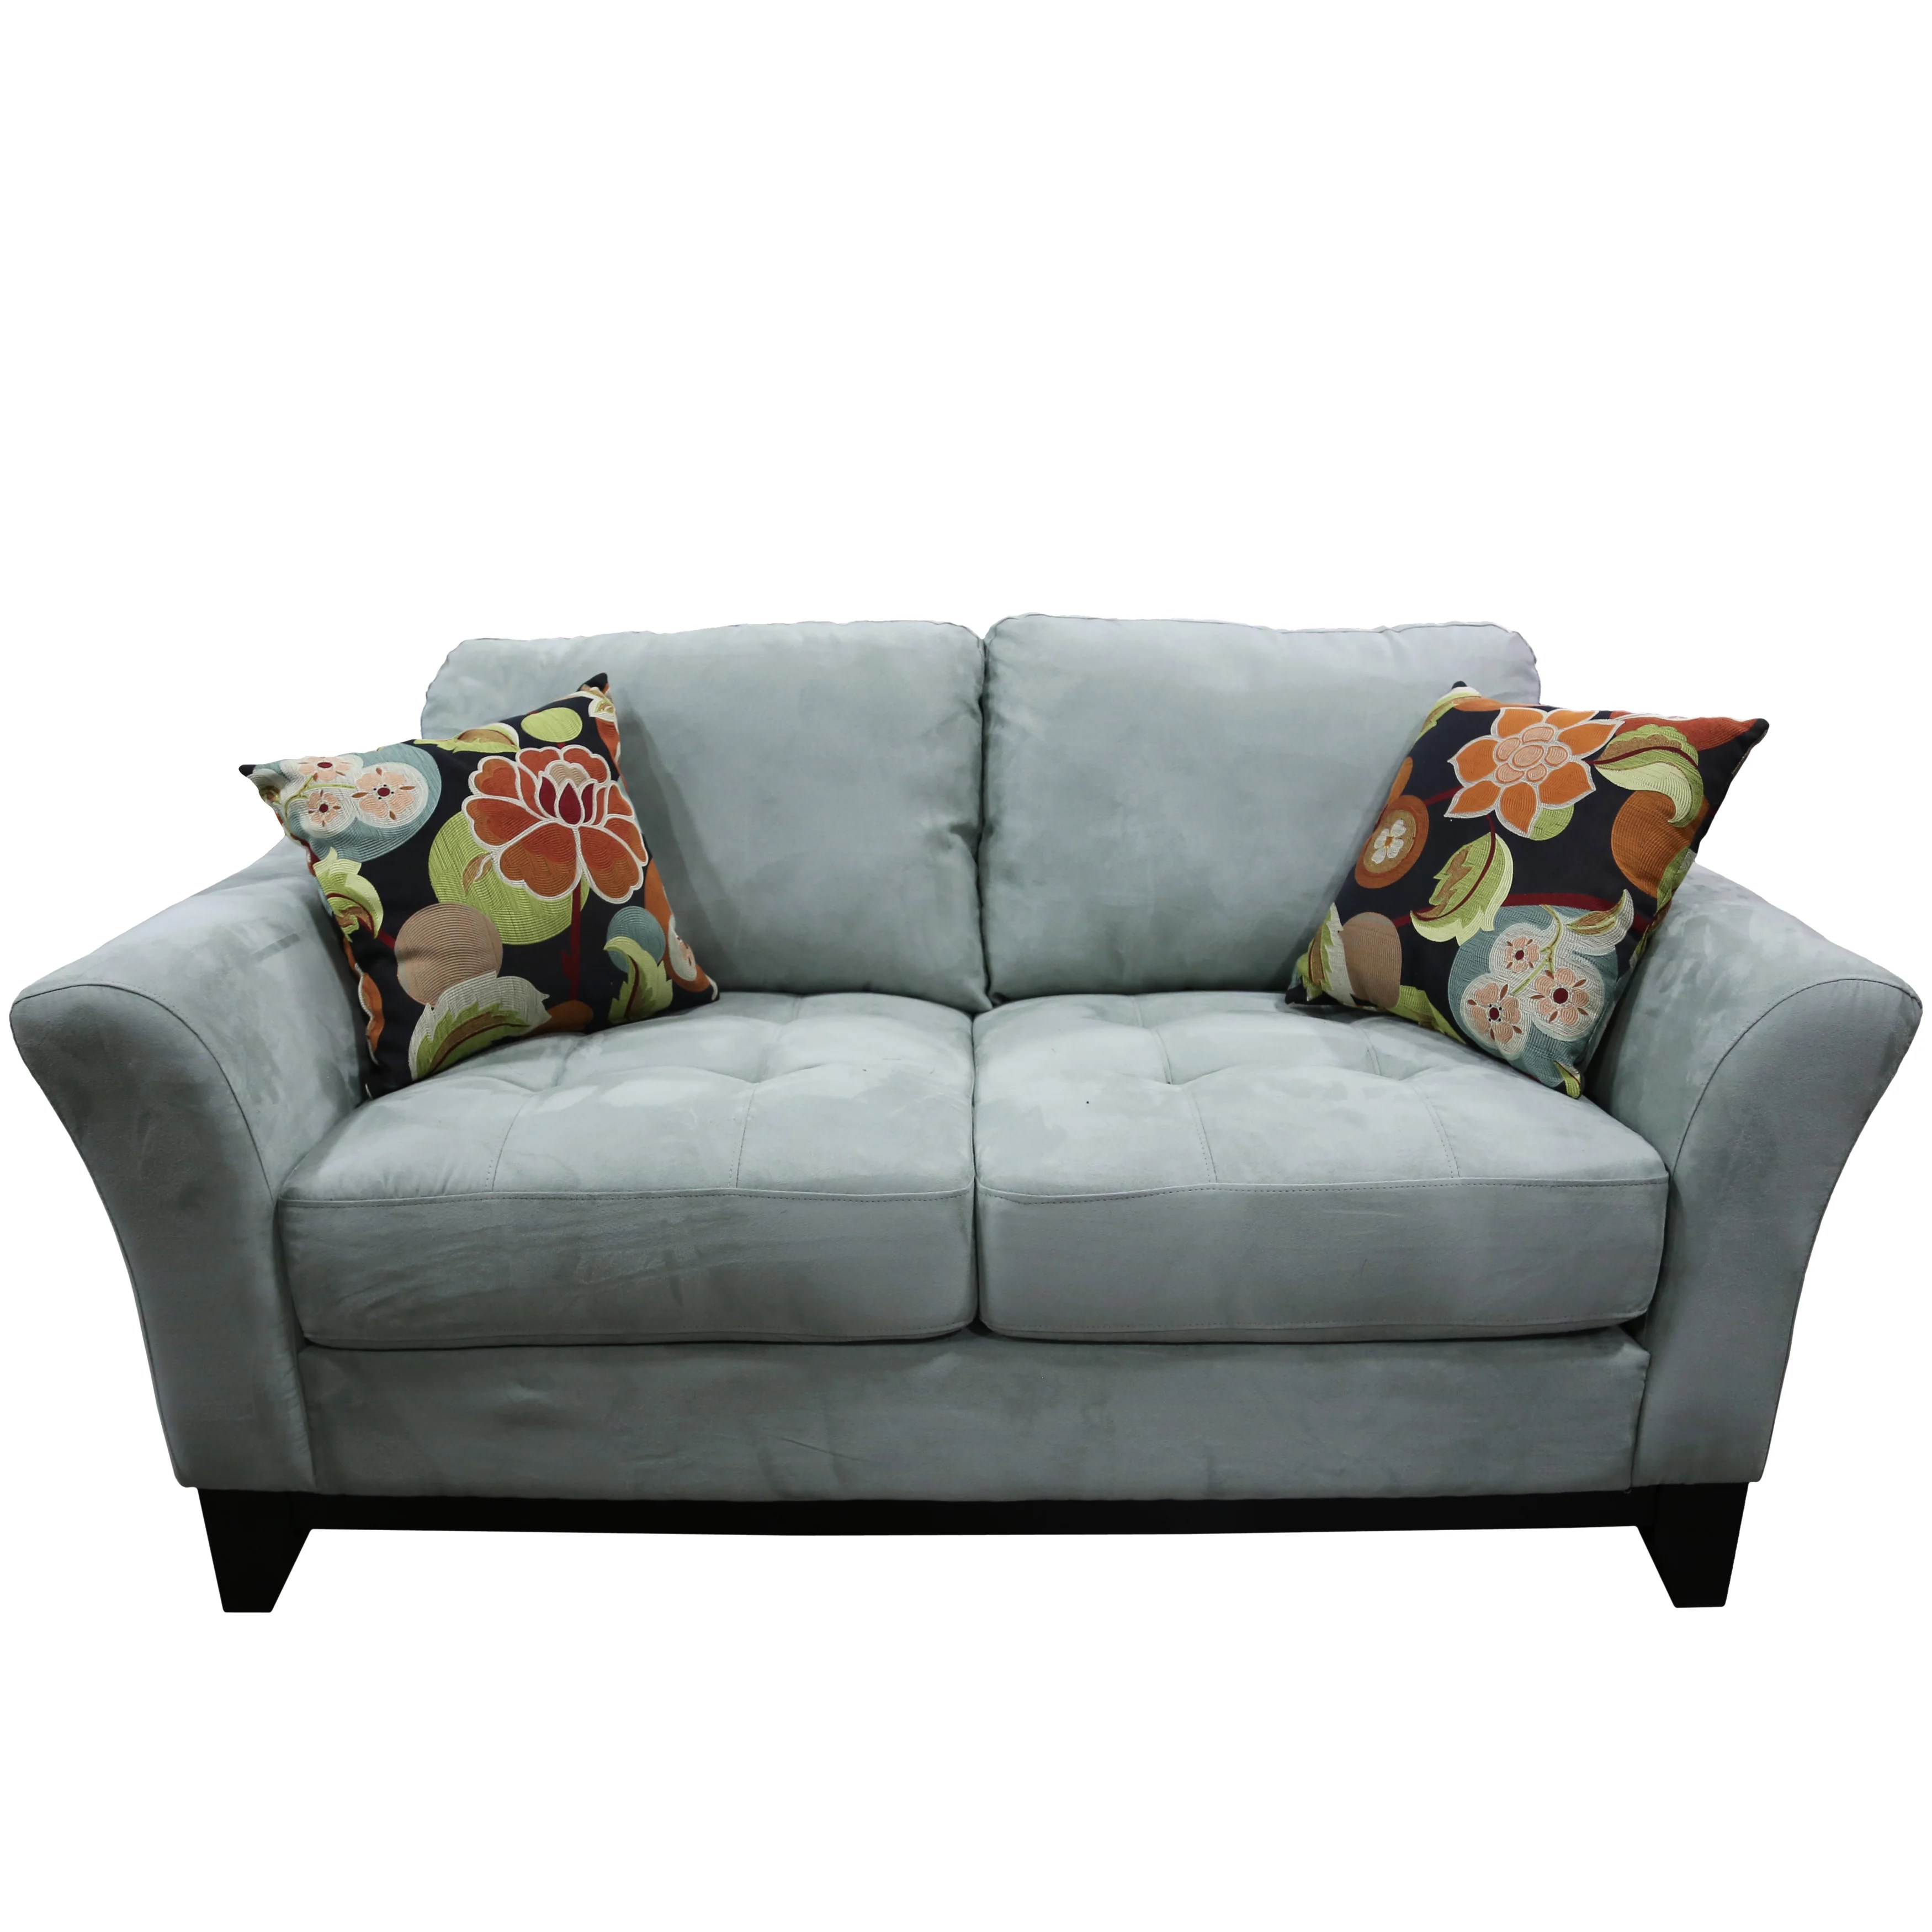 closeout living room furniture rustic design shop porter avalon powder blue sofa loveseat set with woven floral accent pillows free shipping today overstock com 11324438